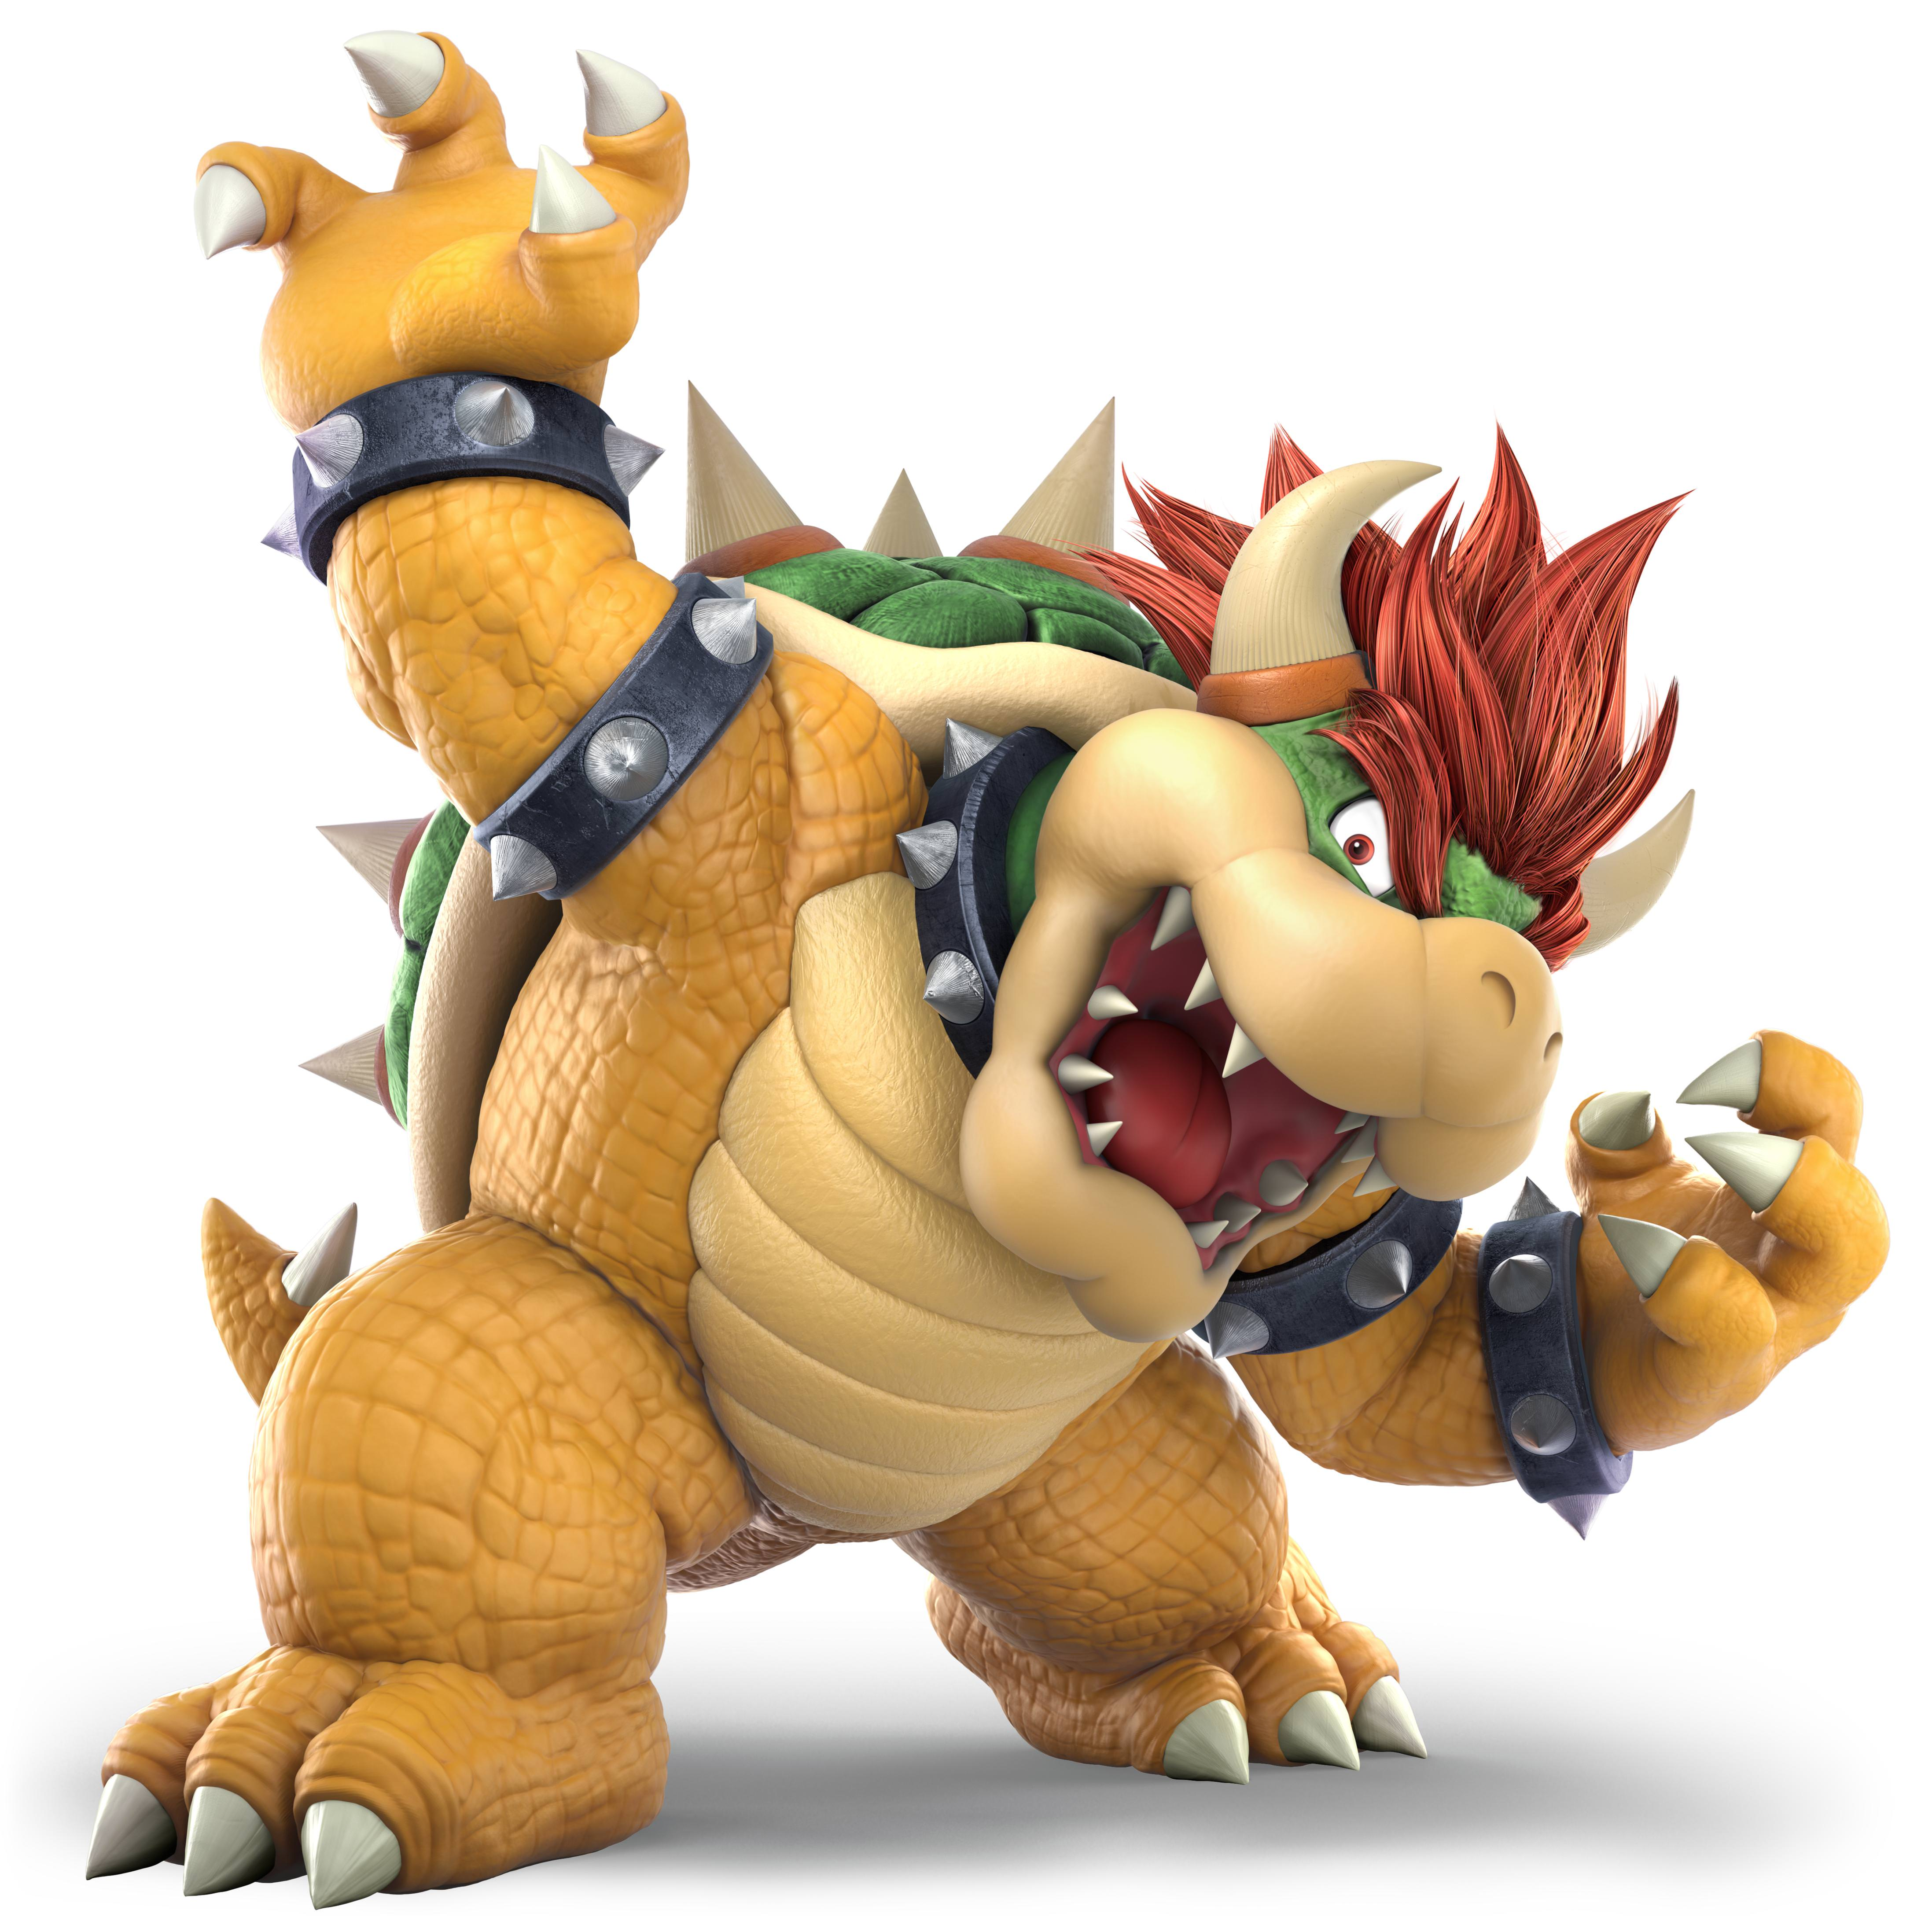 Super Smash Bros Ultimate How To Unlock Bowser